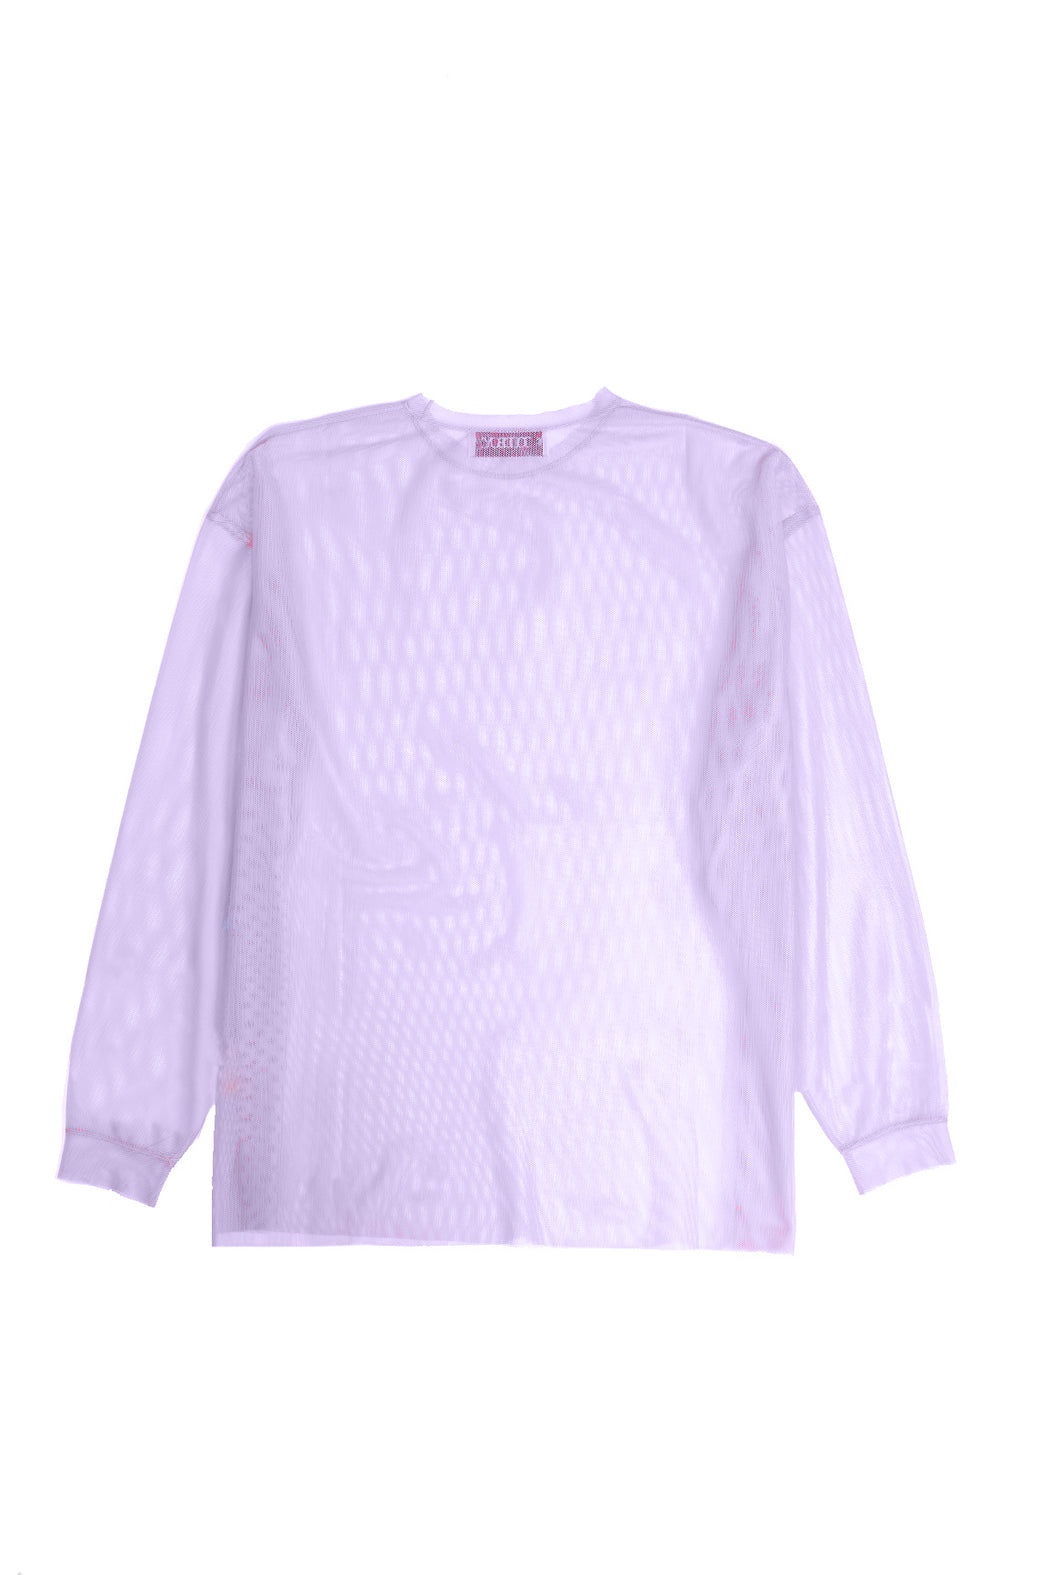 Oversized L/S Mesh Shirt - Light Purple